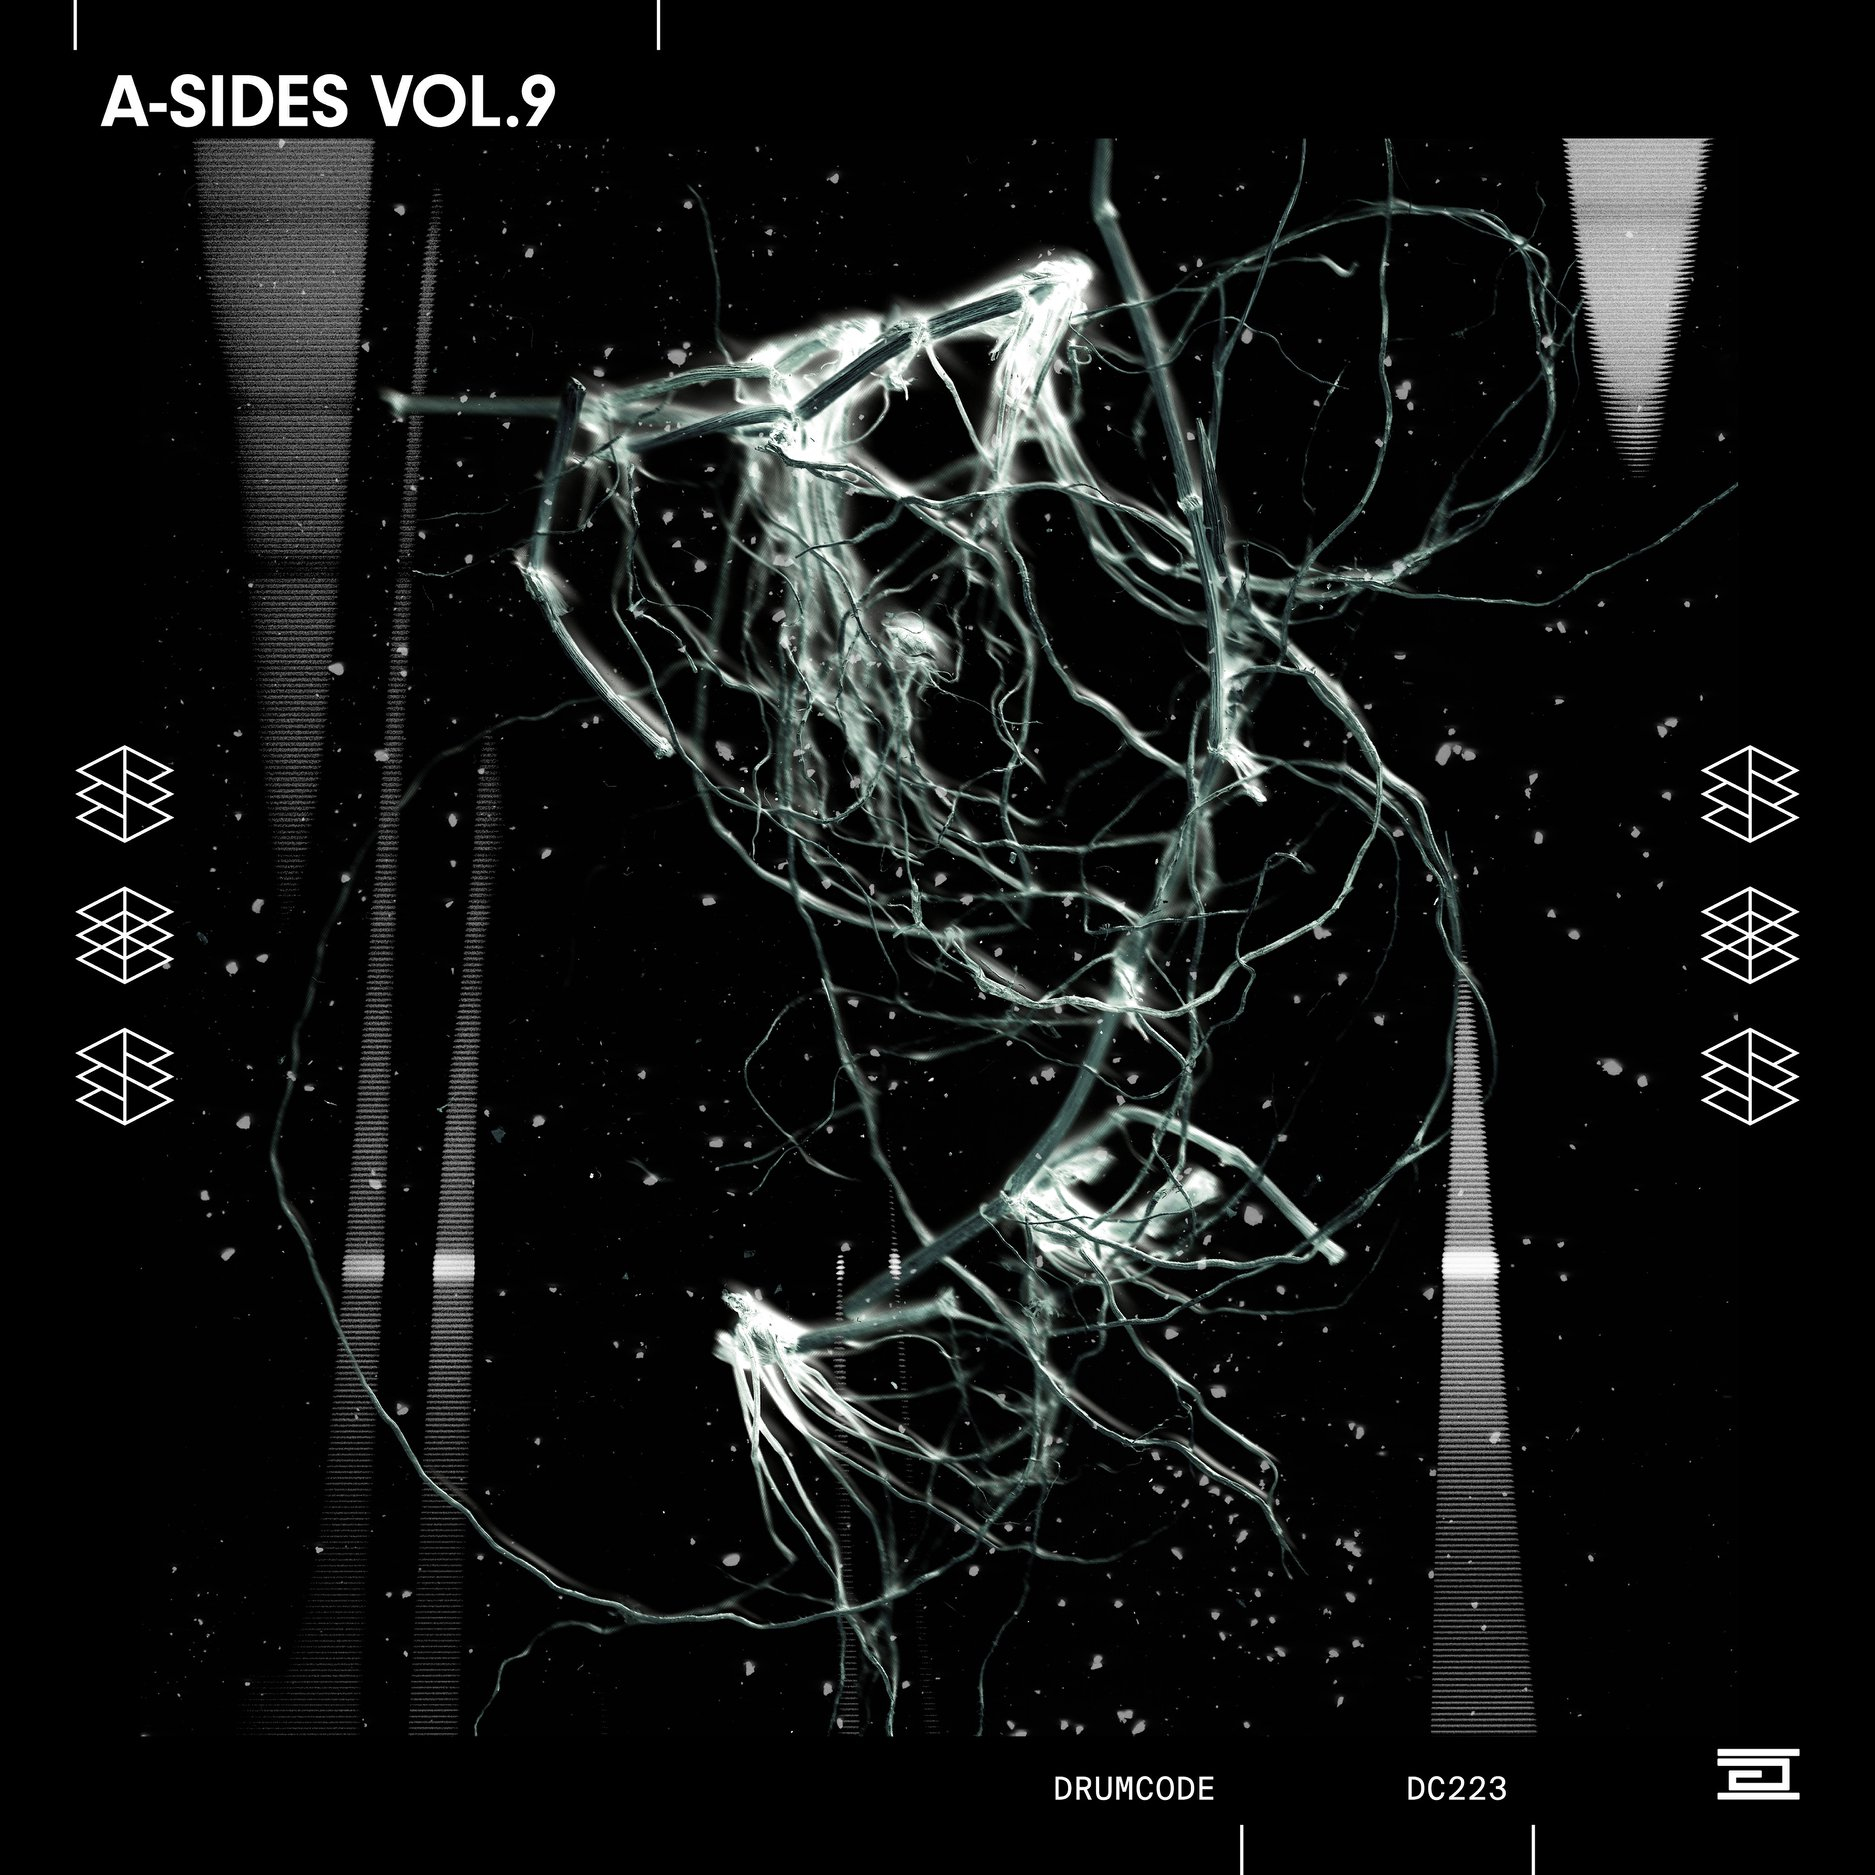 Drumcode A-Sides Vol. 9